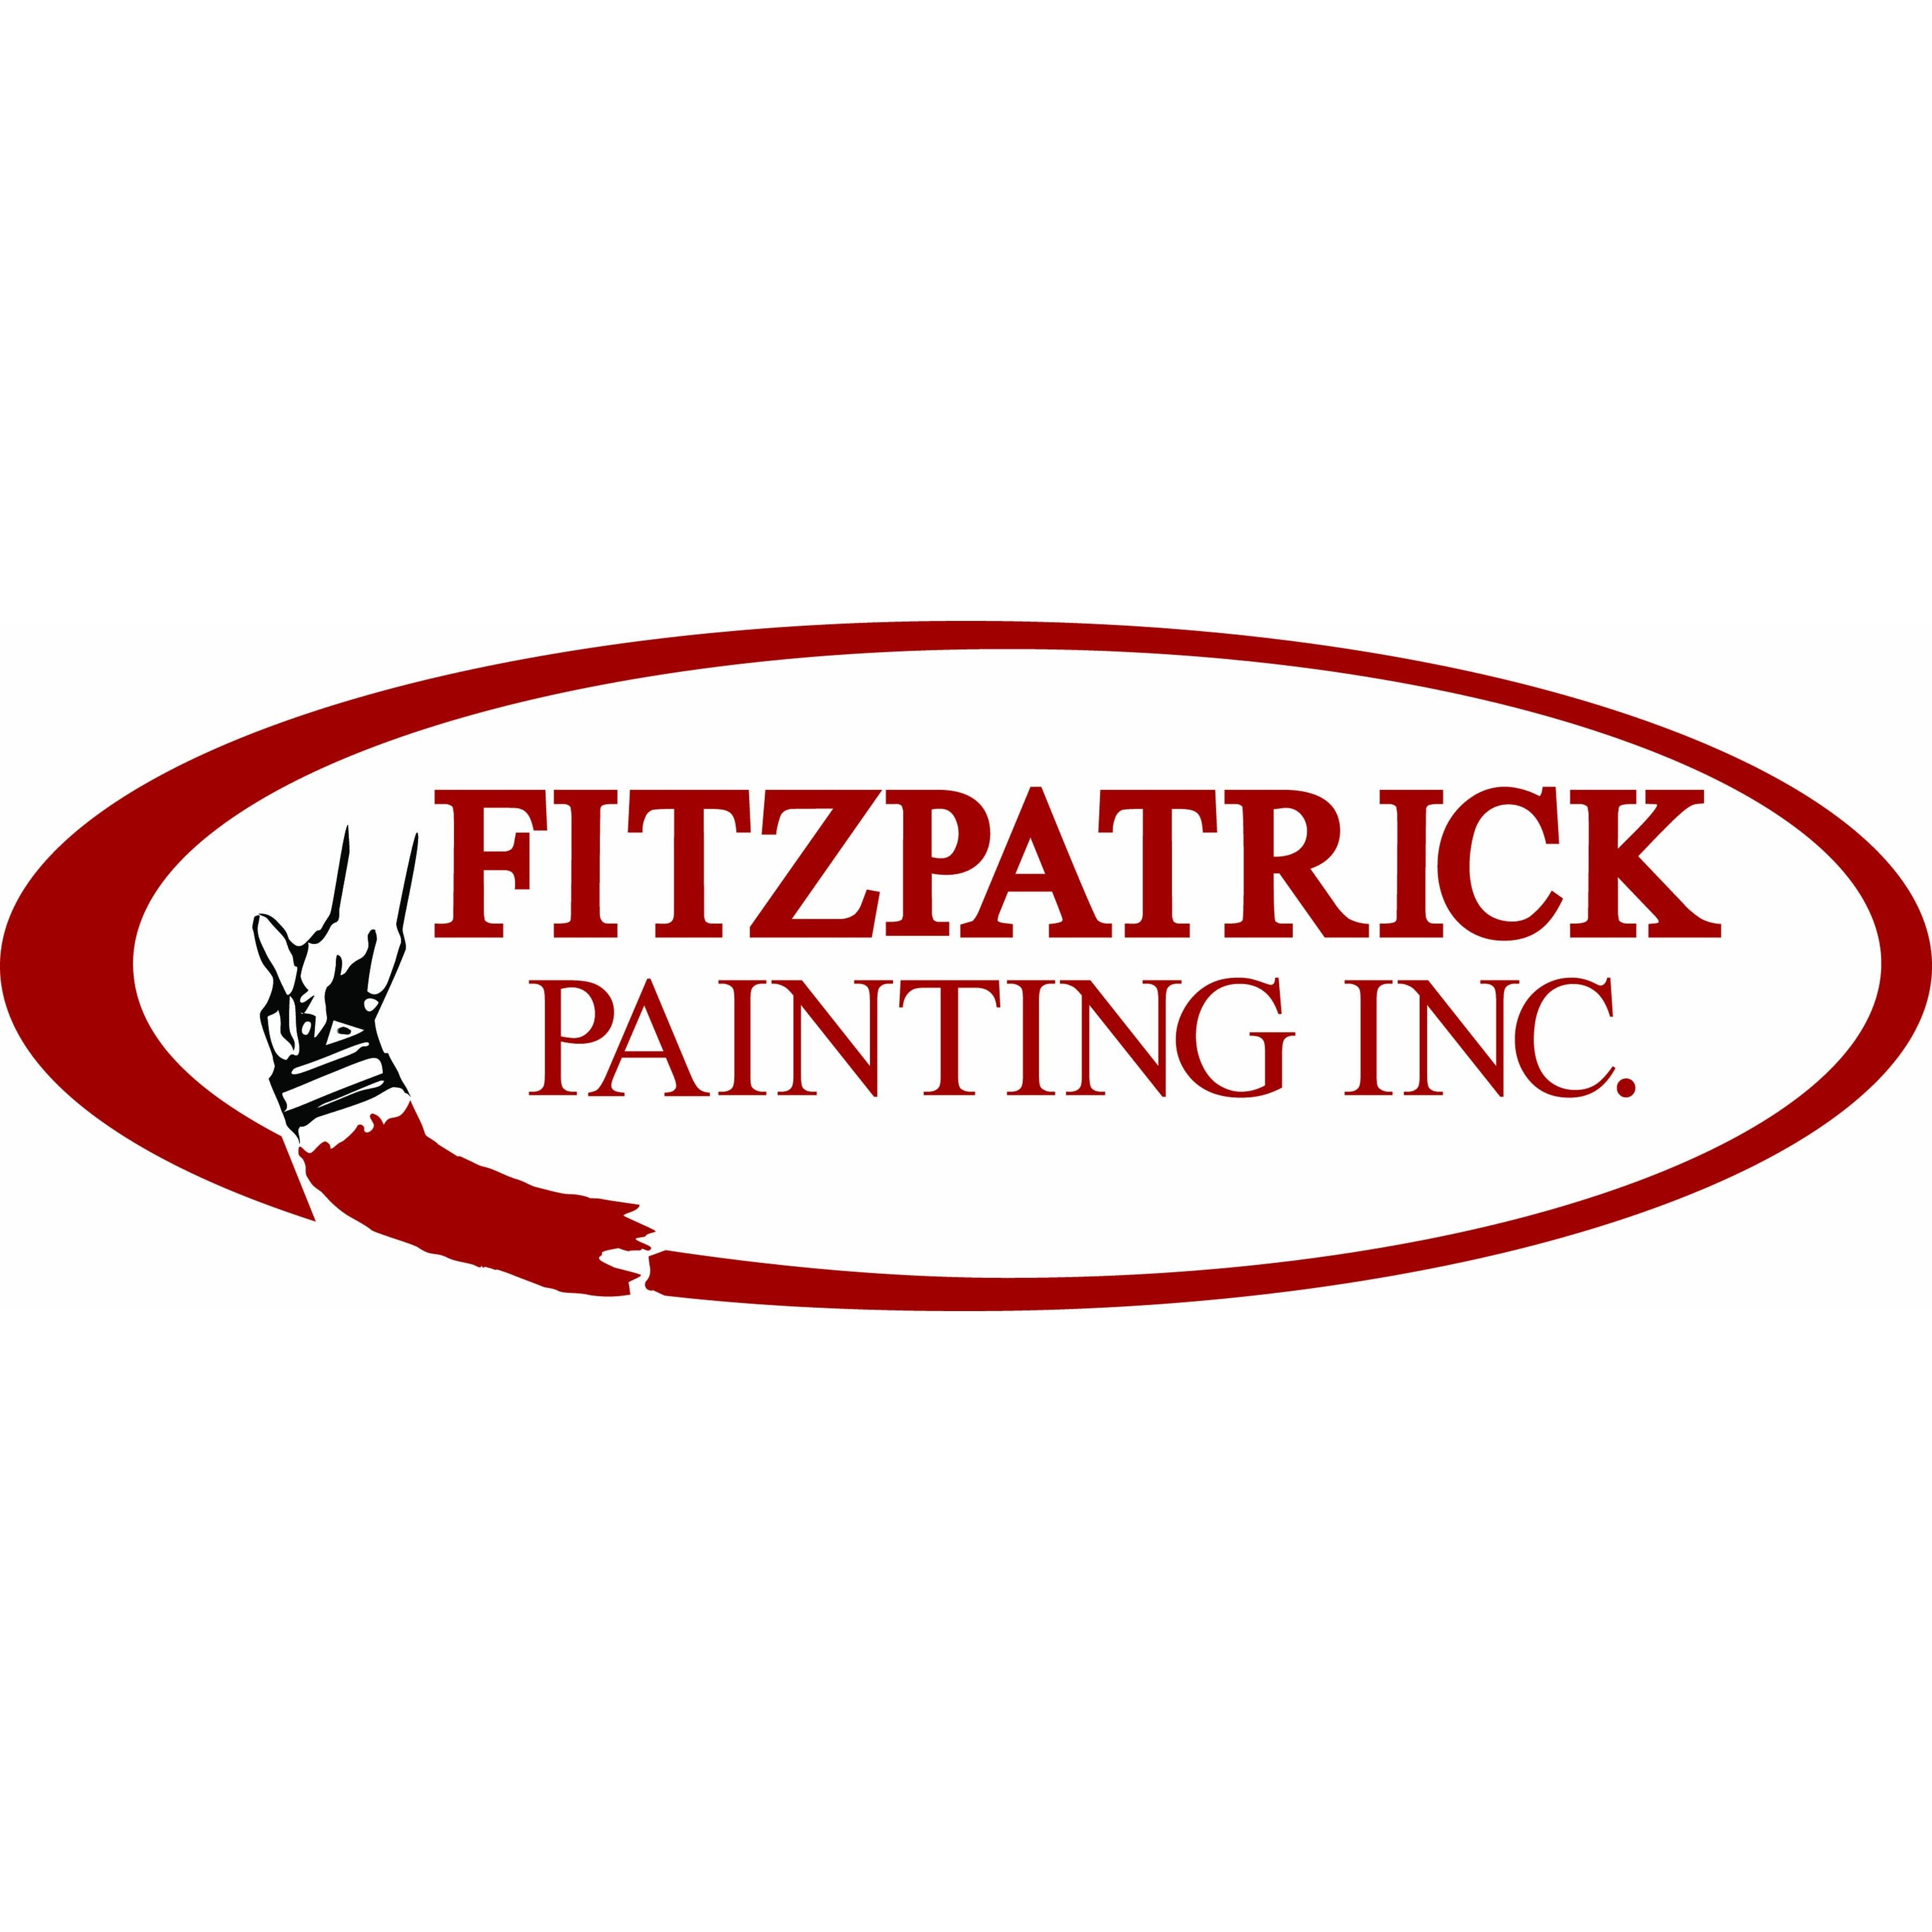 Fitzpatrick Painting Inc